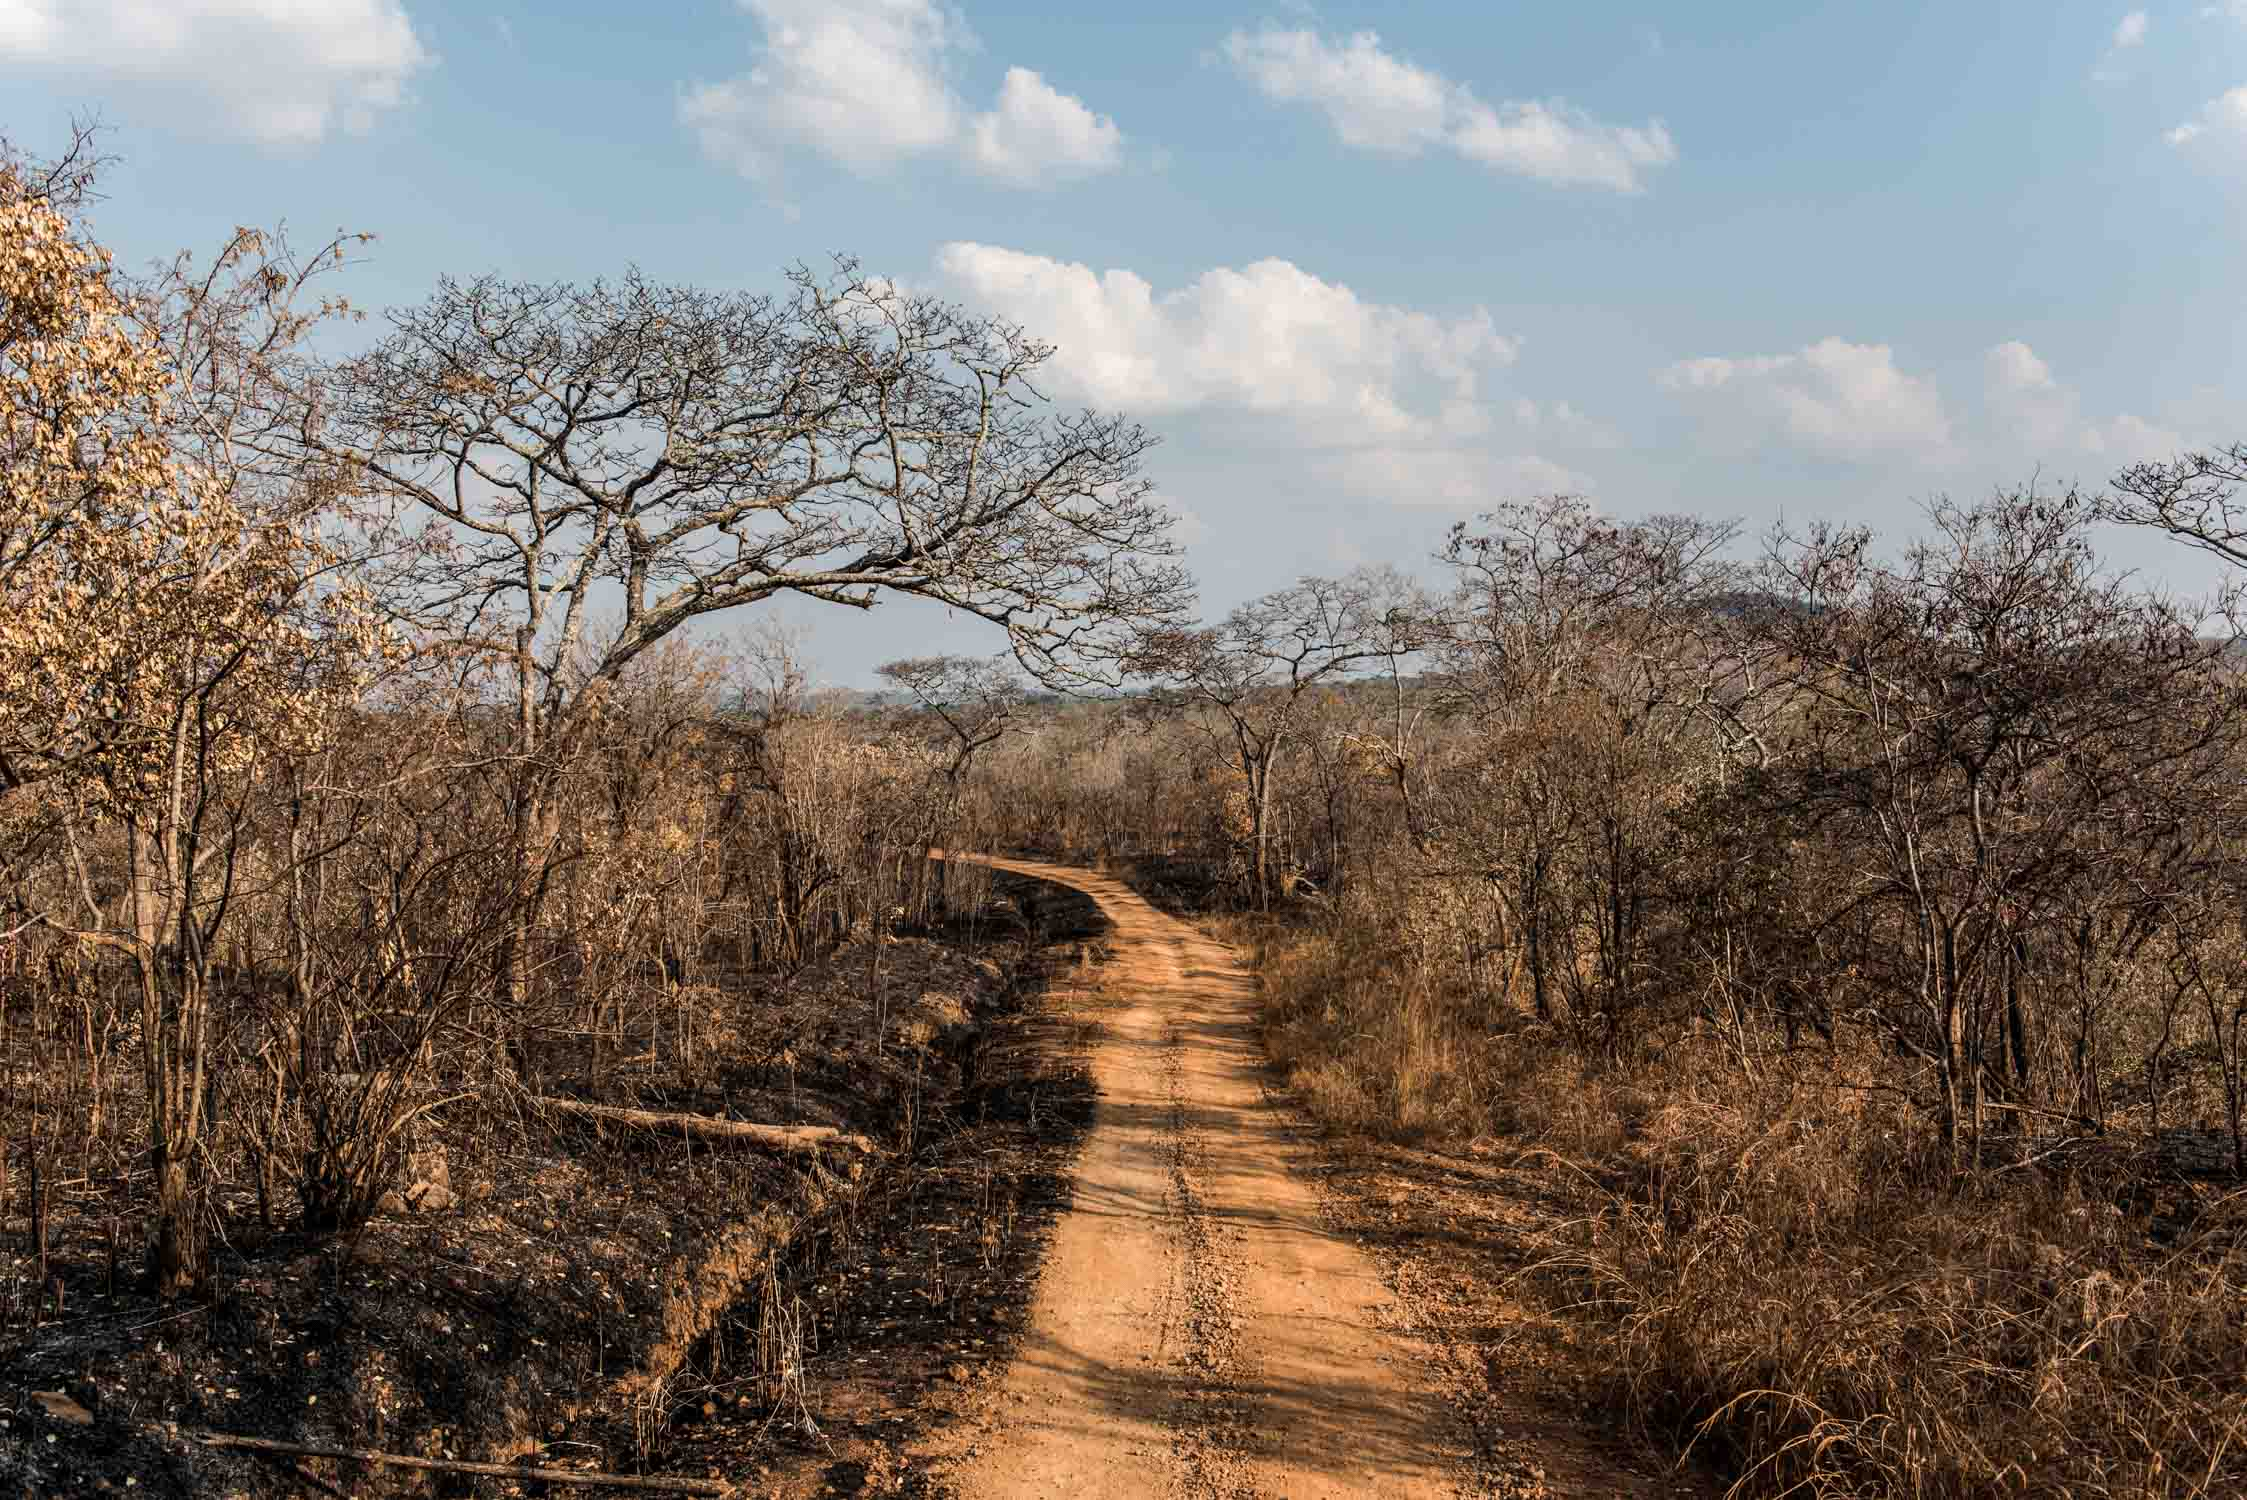 Burned land after uncontrolled wildfires in the southern sector of Selous during dry season.